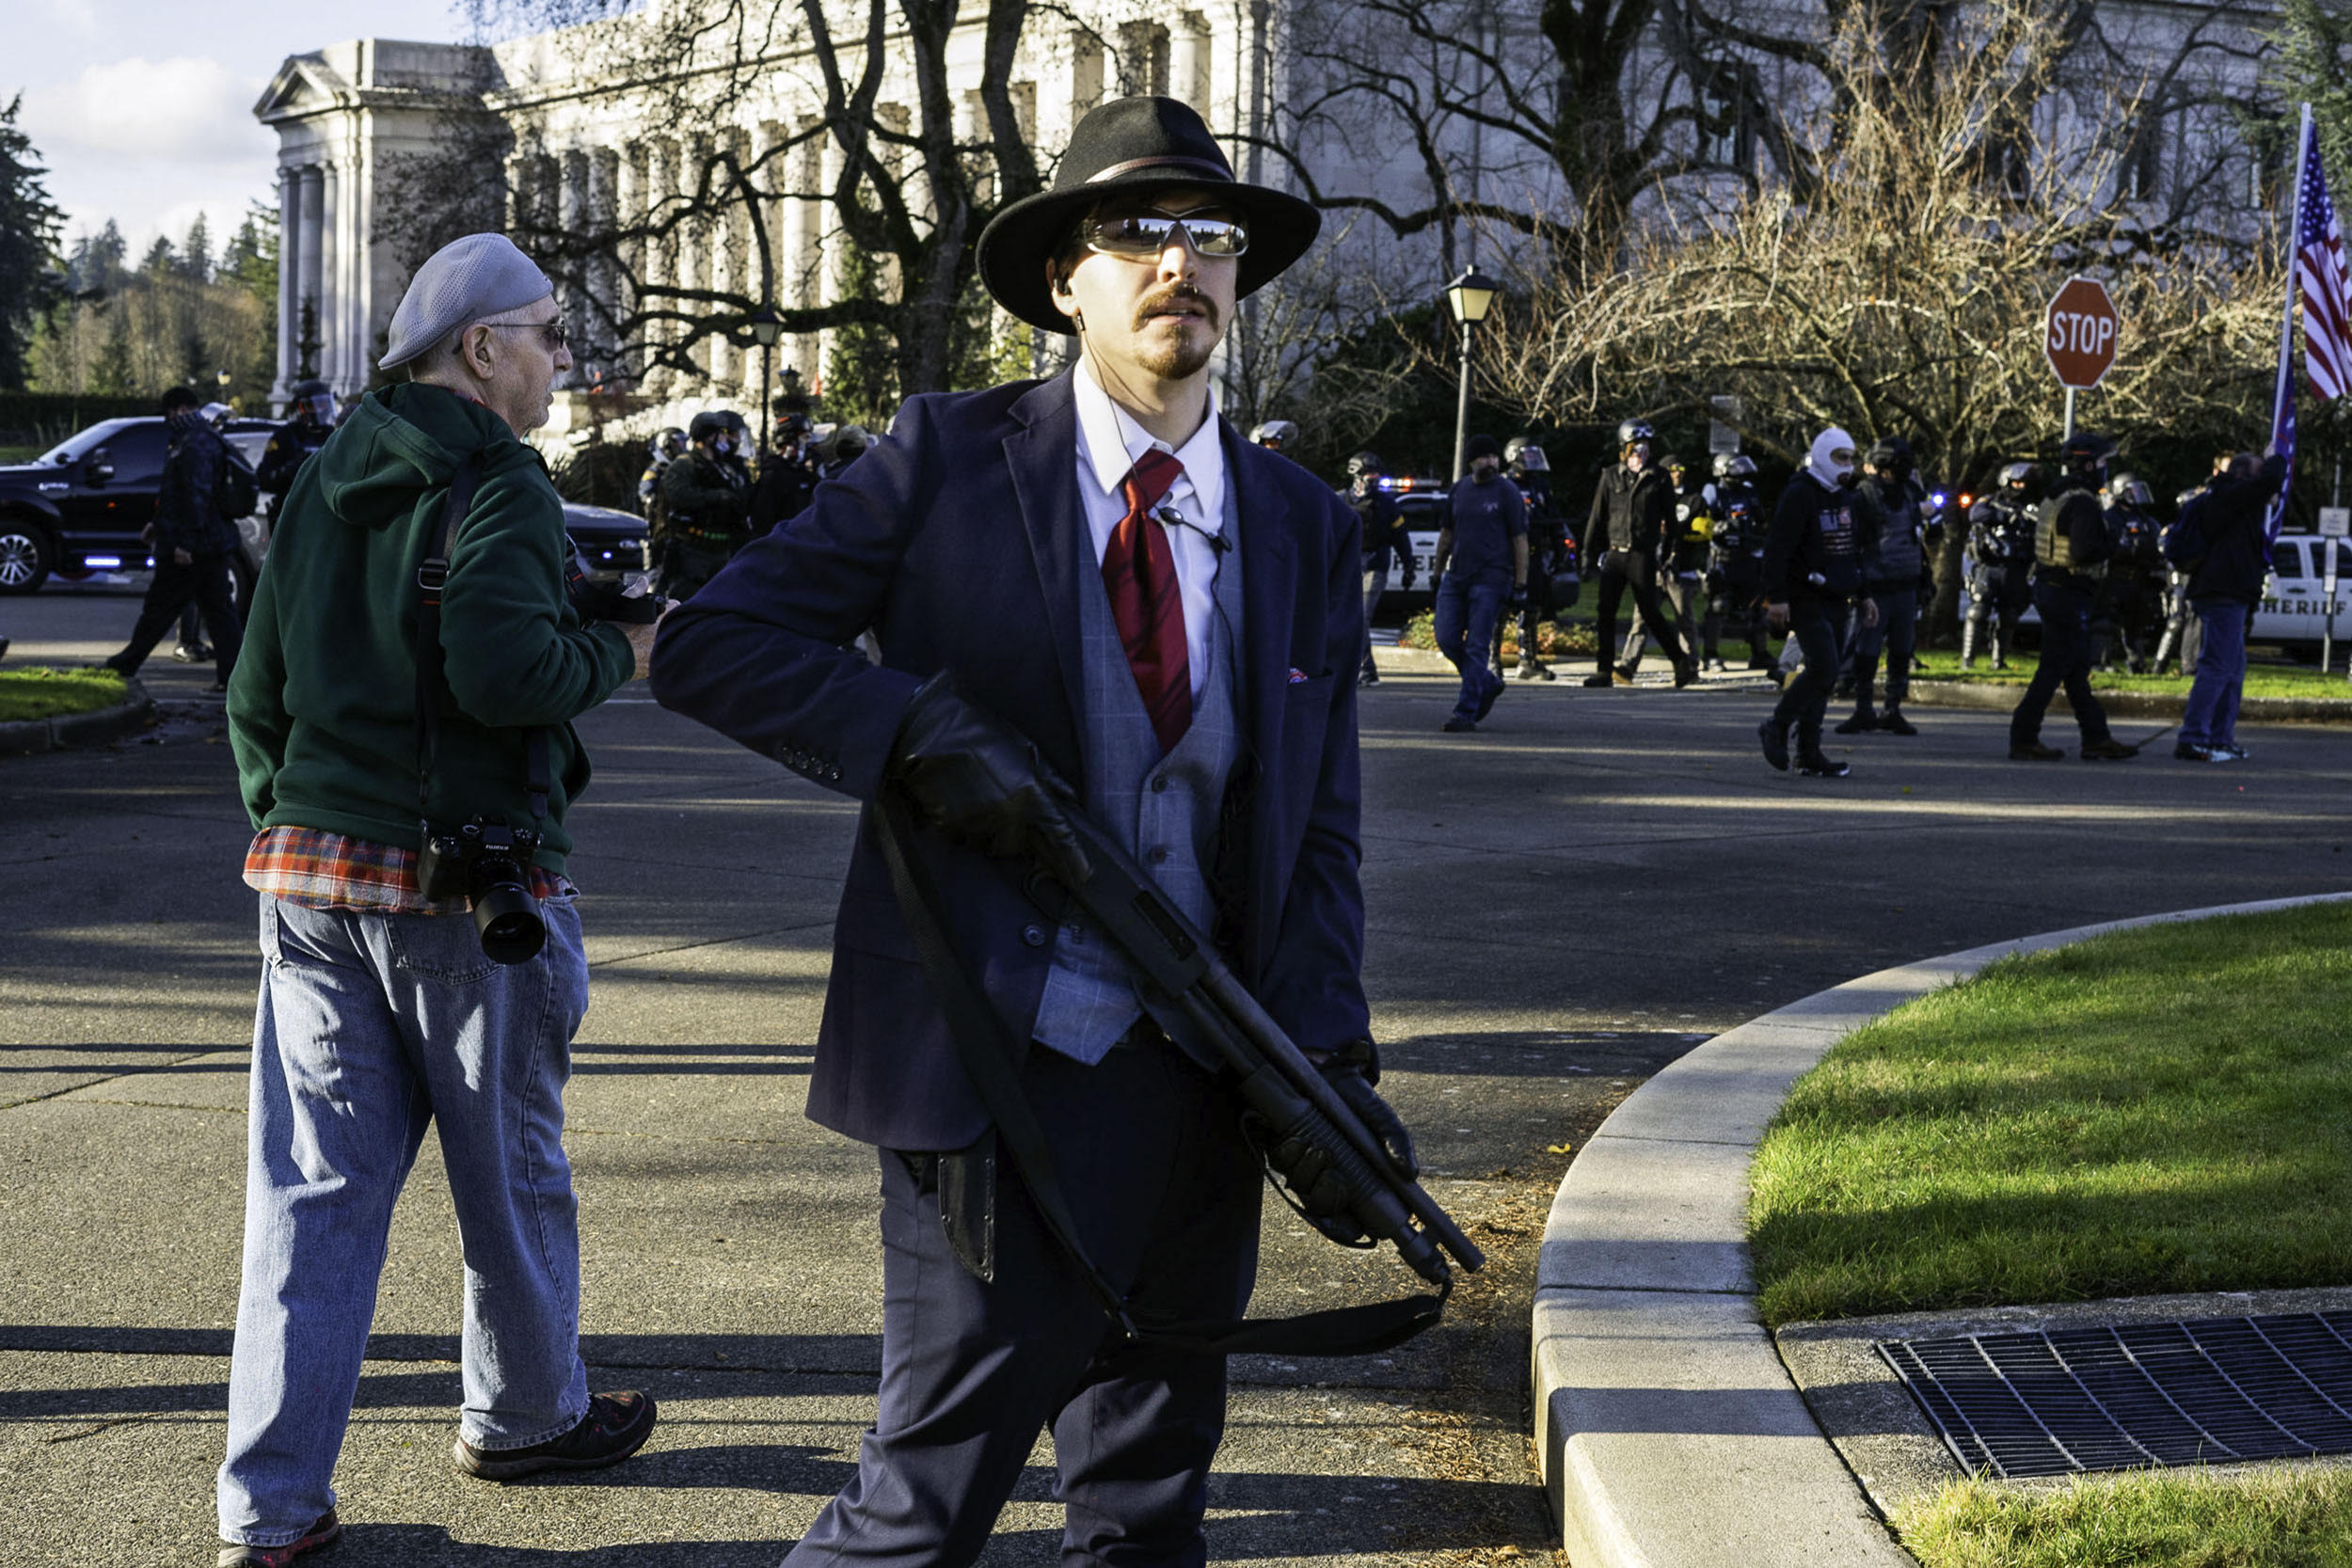 After a turbulent year, Washington state poised to ban guns at protests, Capitol grounds